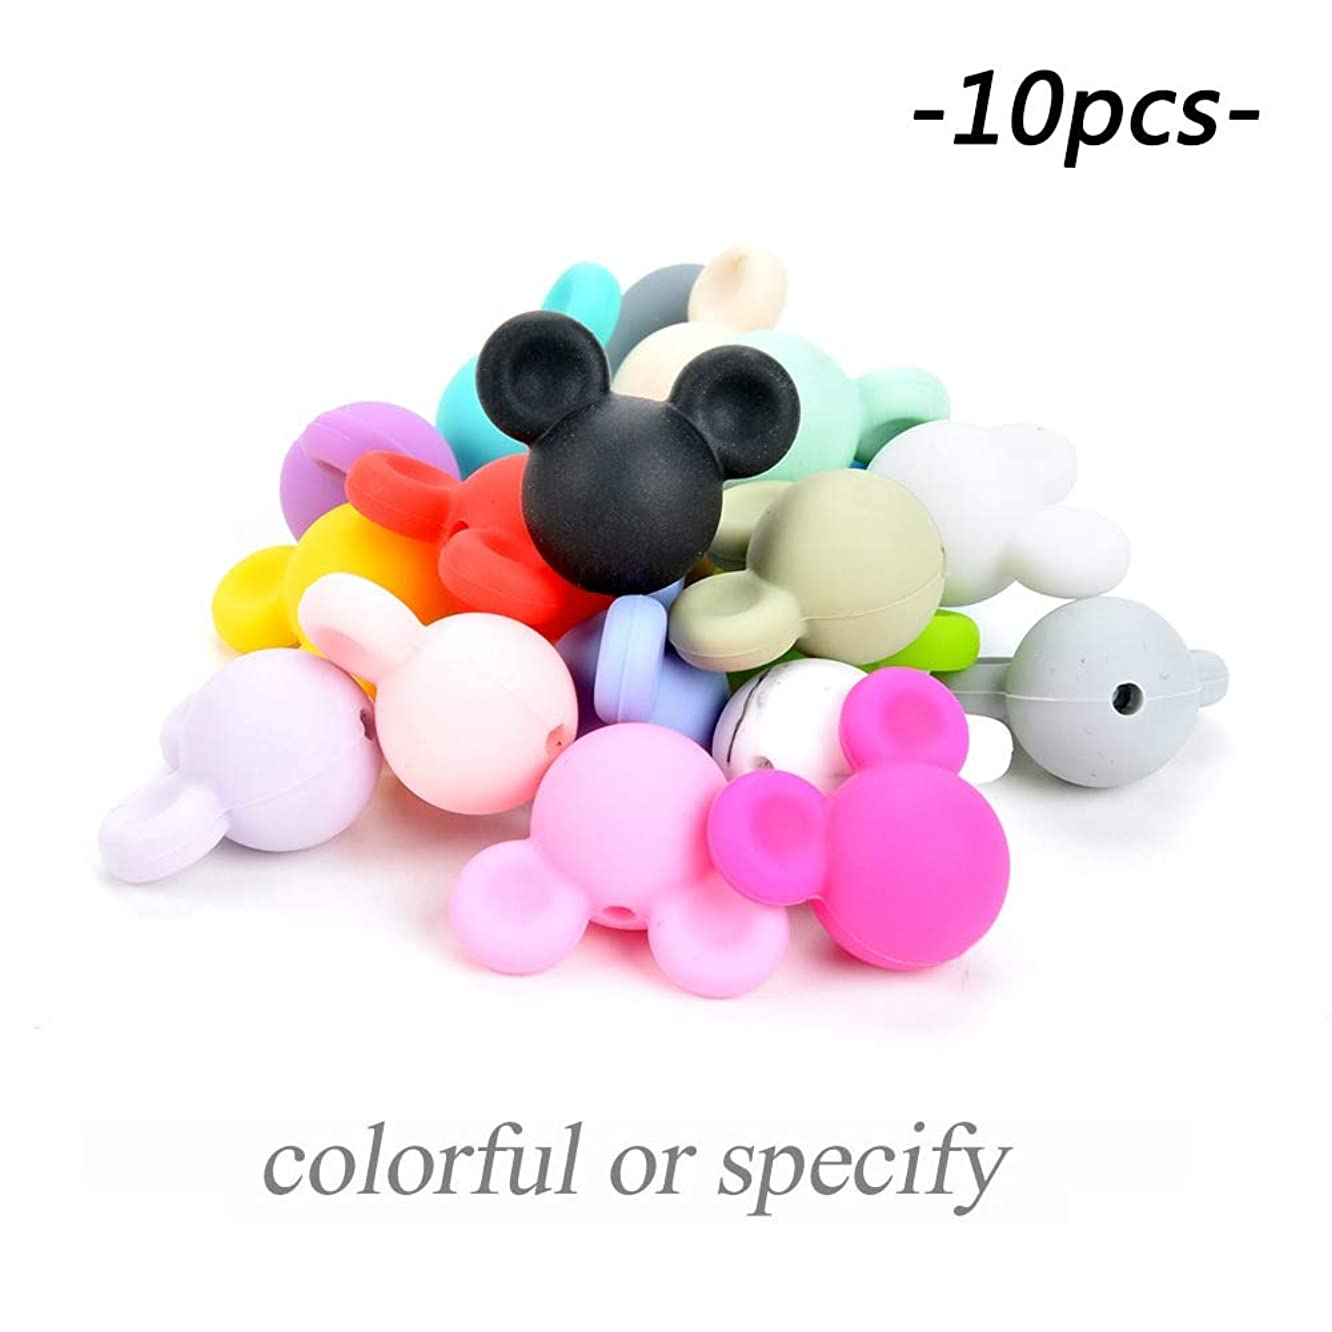 Aquaman Store 10 Pieces - Wholesale 10pcs/lot Mickey Baby Teething Beads Cartoon Silicone Beads for Necklaces BPA Free Teether Toy Accessories Nursing DIY 1 PCs